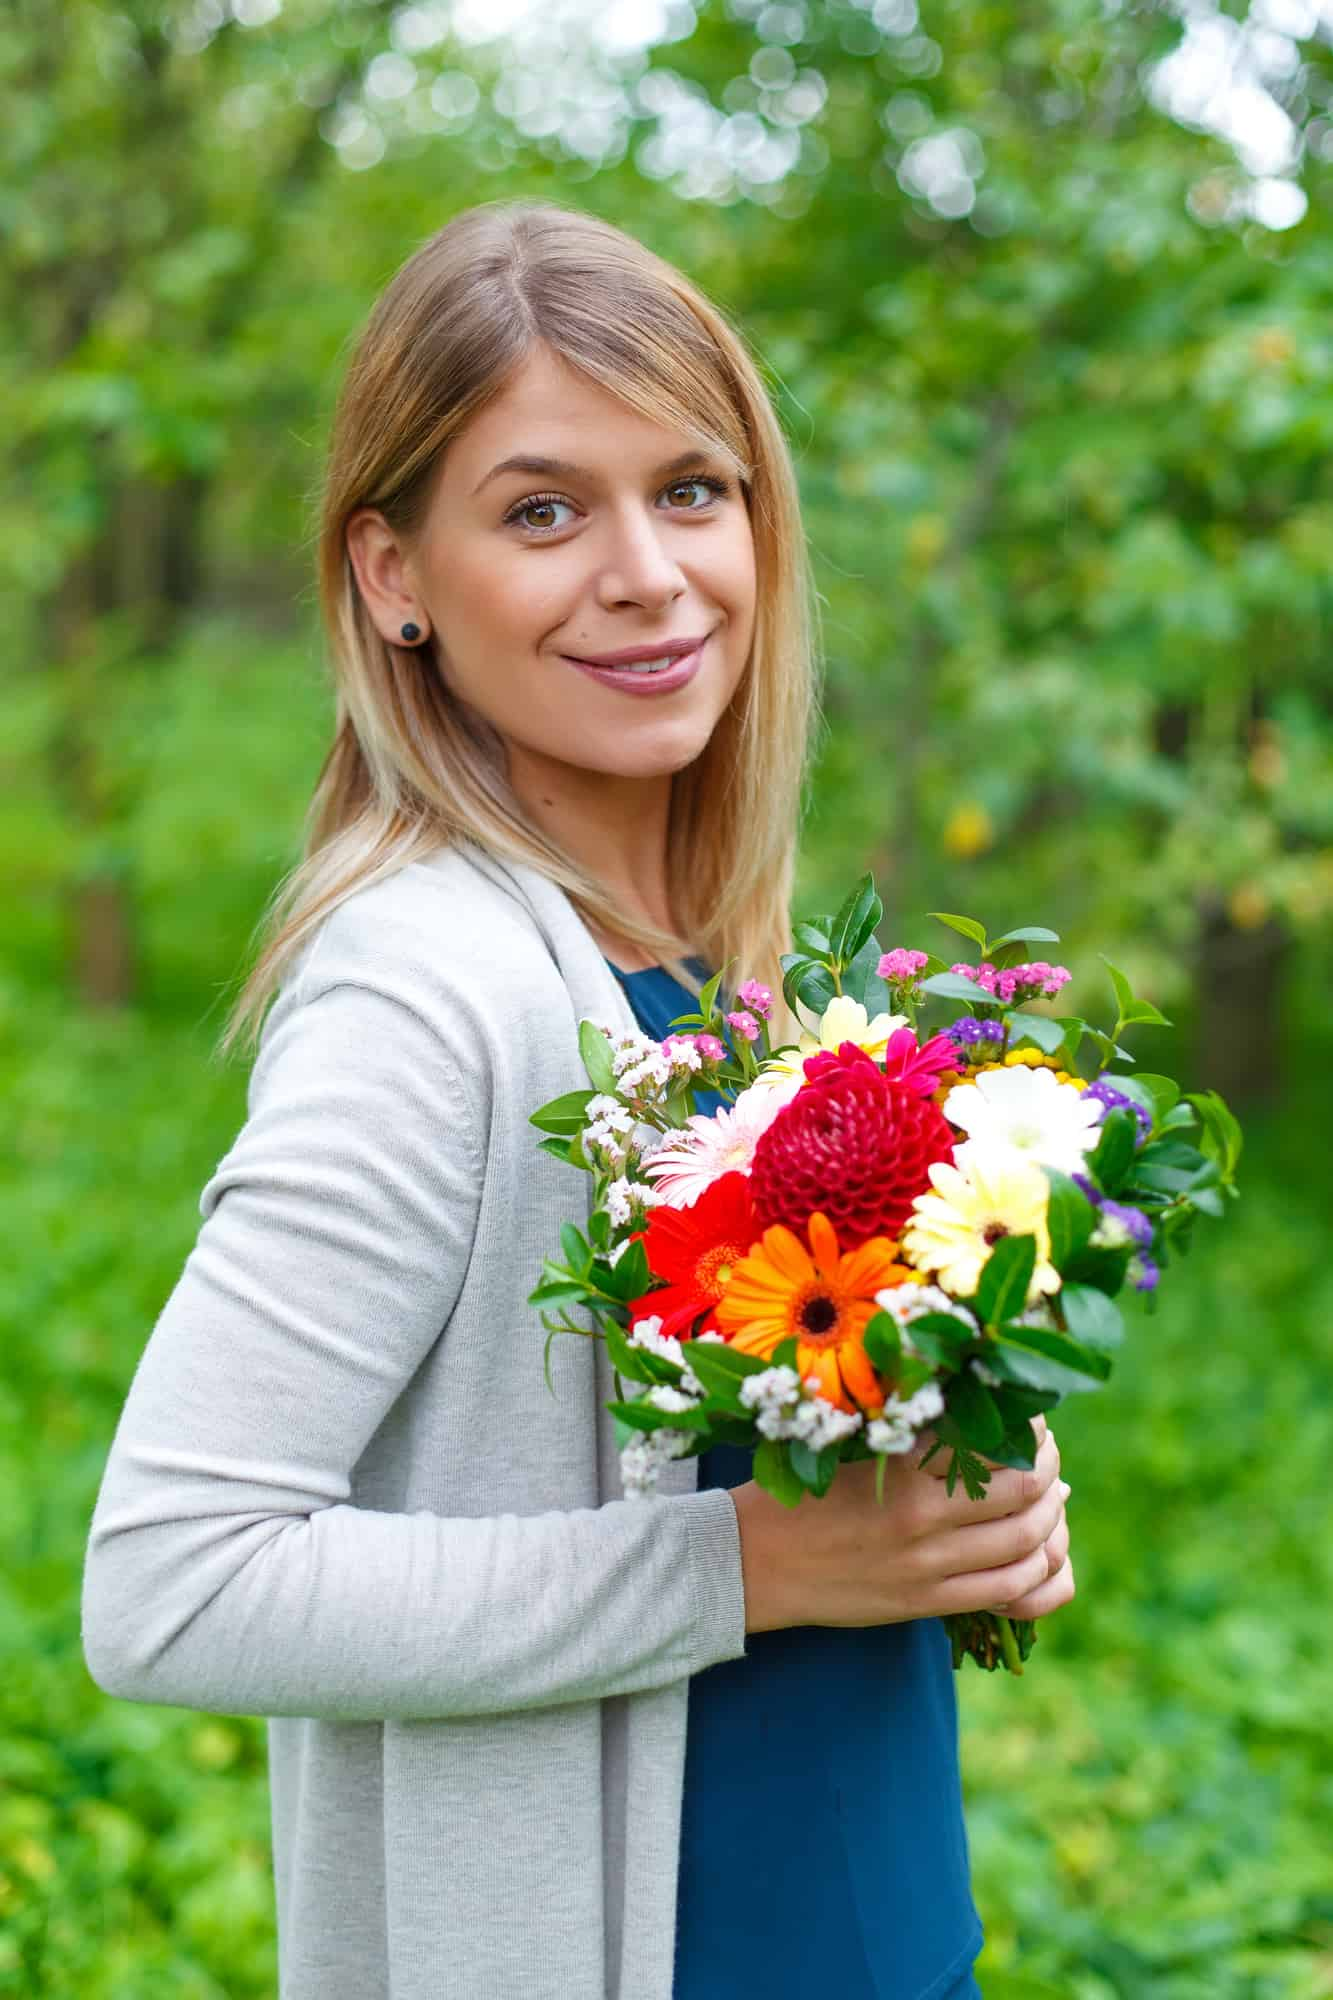 We invite you to shop with Mayfield Florist for fresh same day delivery flowers to honor Breast Cancer Awareness Month